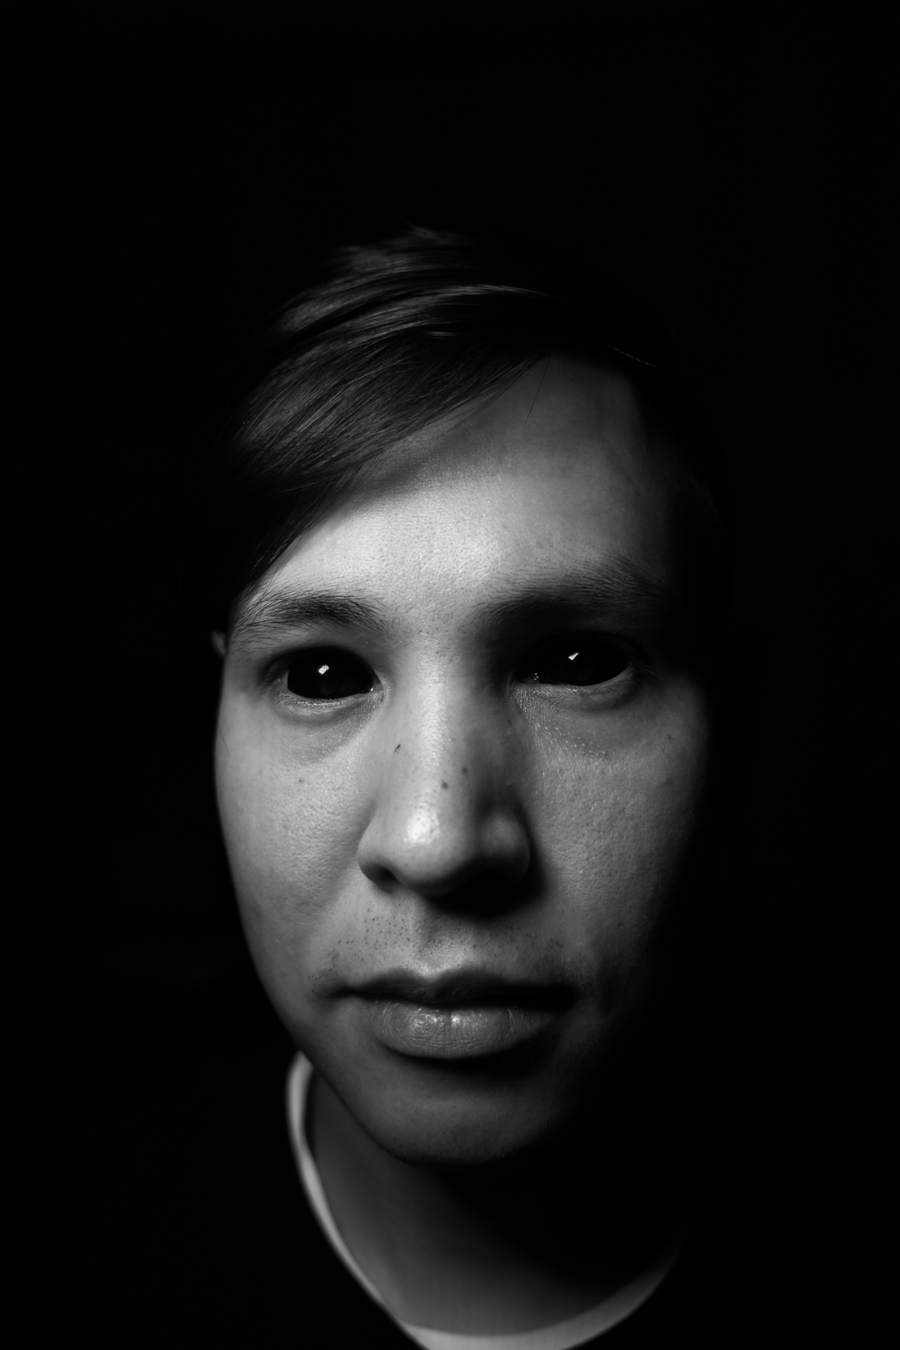 Darkness in those eyes / Photography by Mark Neal / Uploaded 30th October 2016 @ 01:23 PM